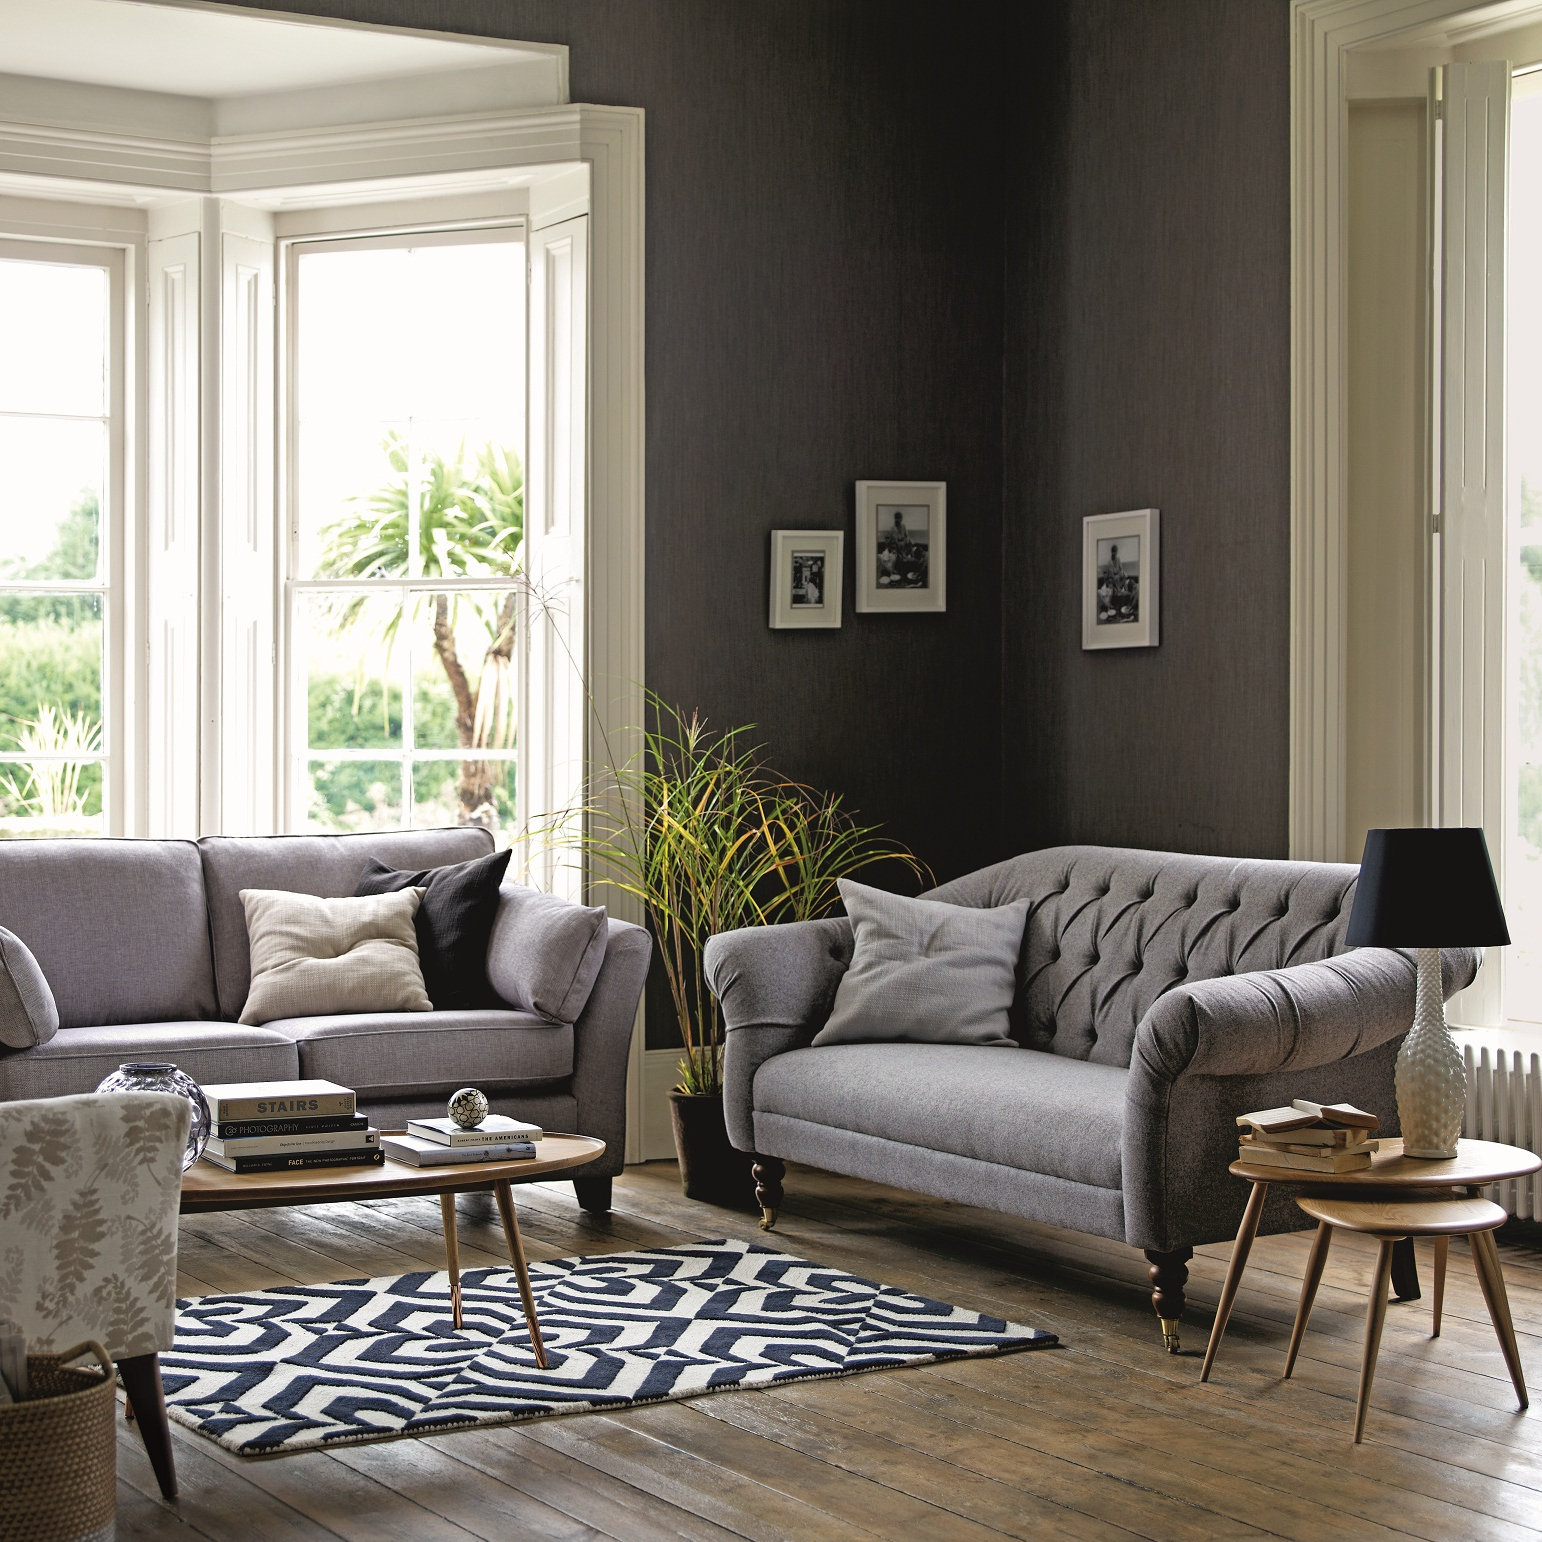 Decorate Your Living Room With Matching Grey Sofas And Liven Up The Interior With A Patterned